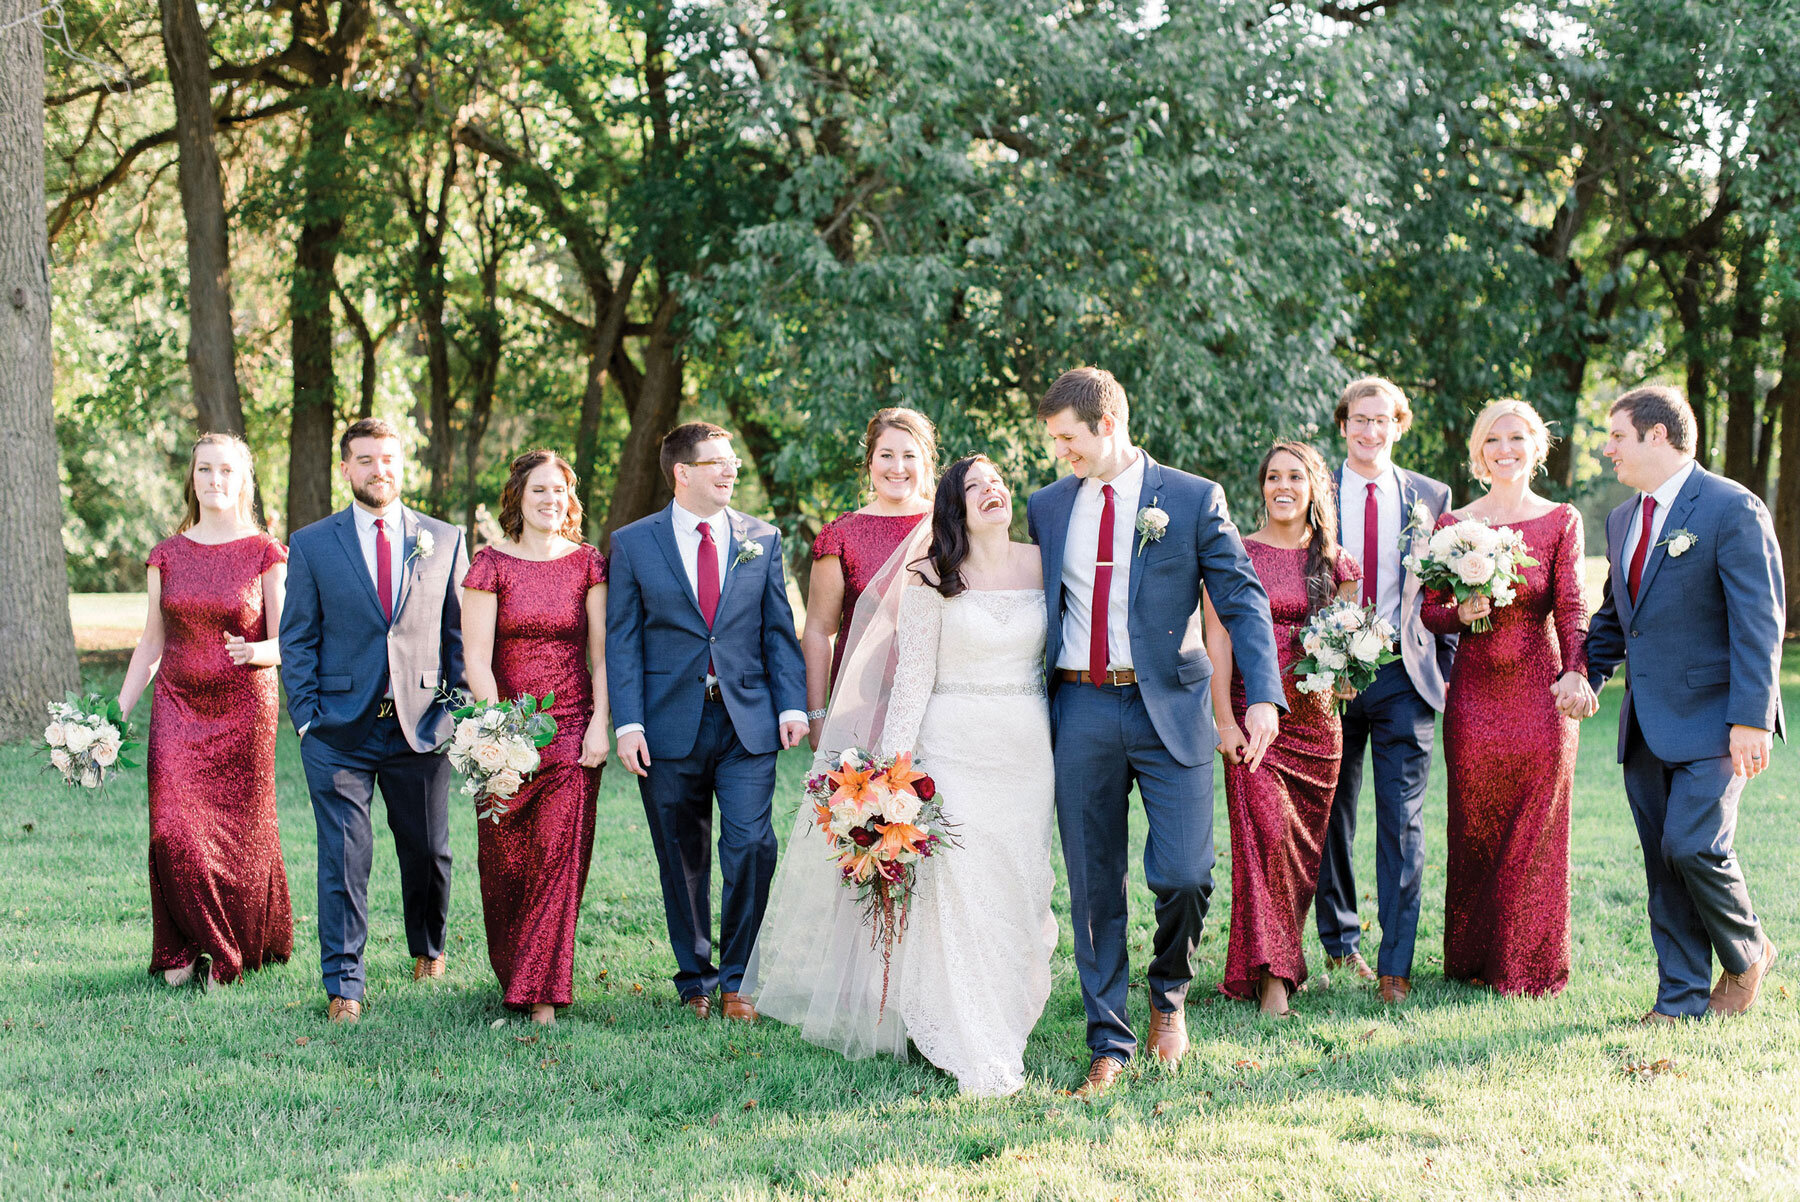 Devann + Corbin - With fall just around the corner, we are loving the rich hues from this October wedding.